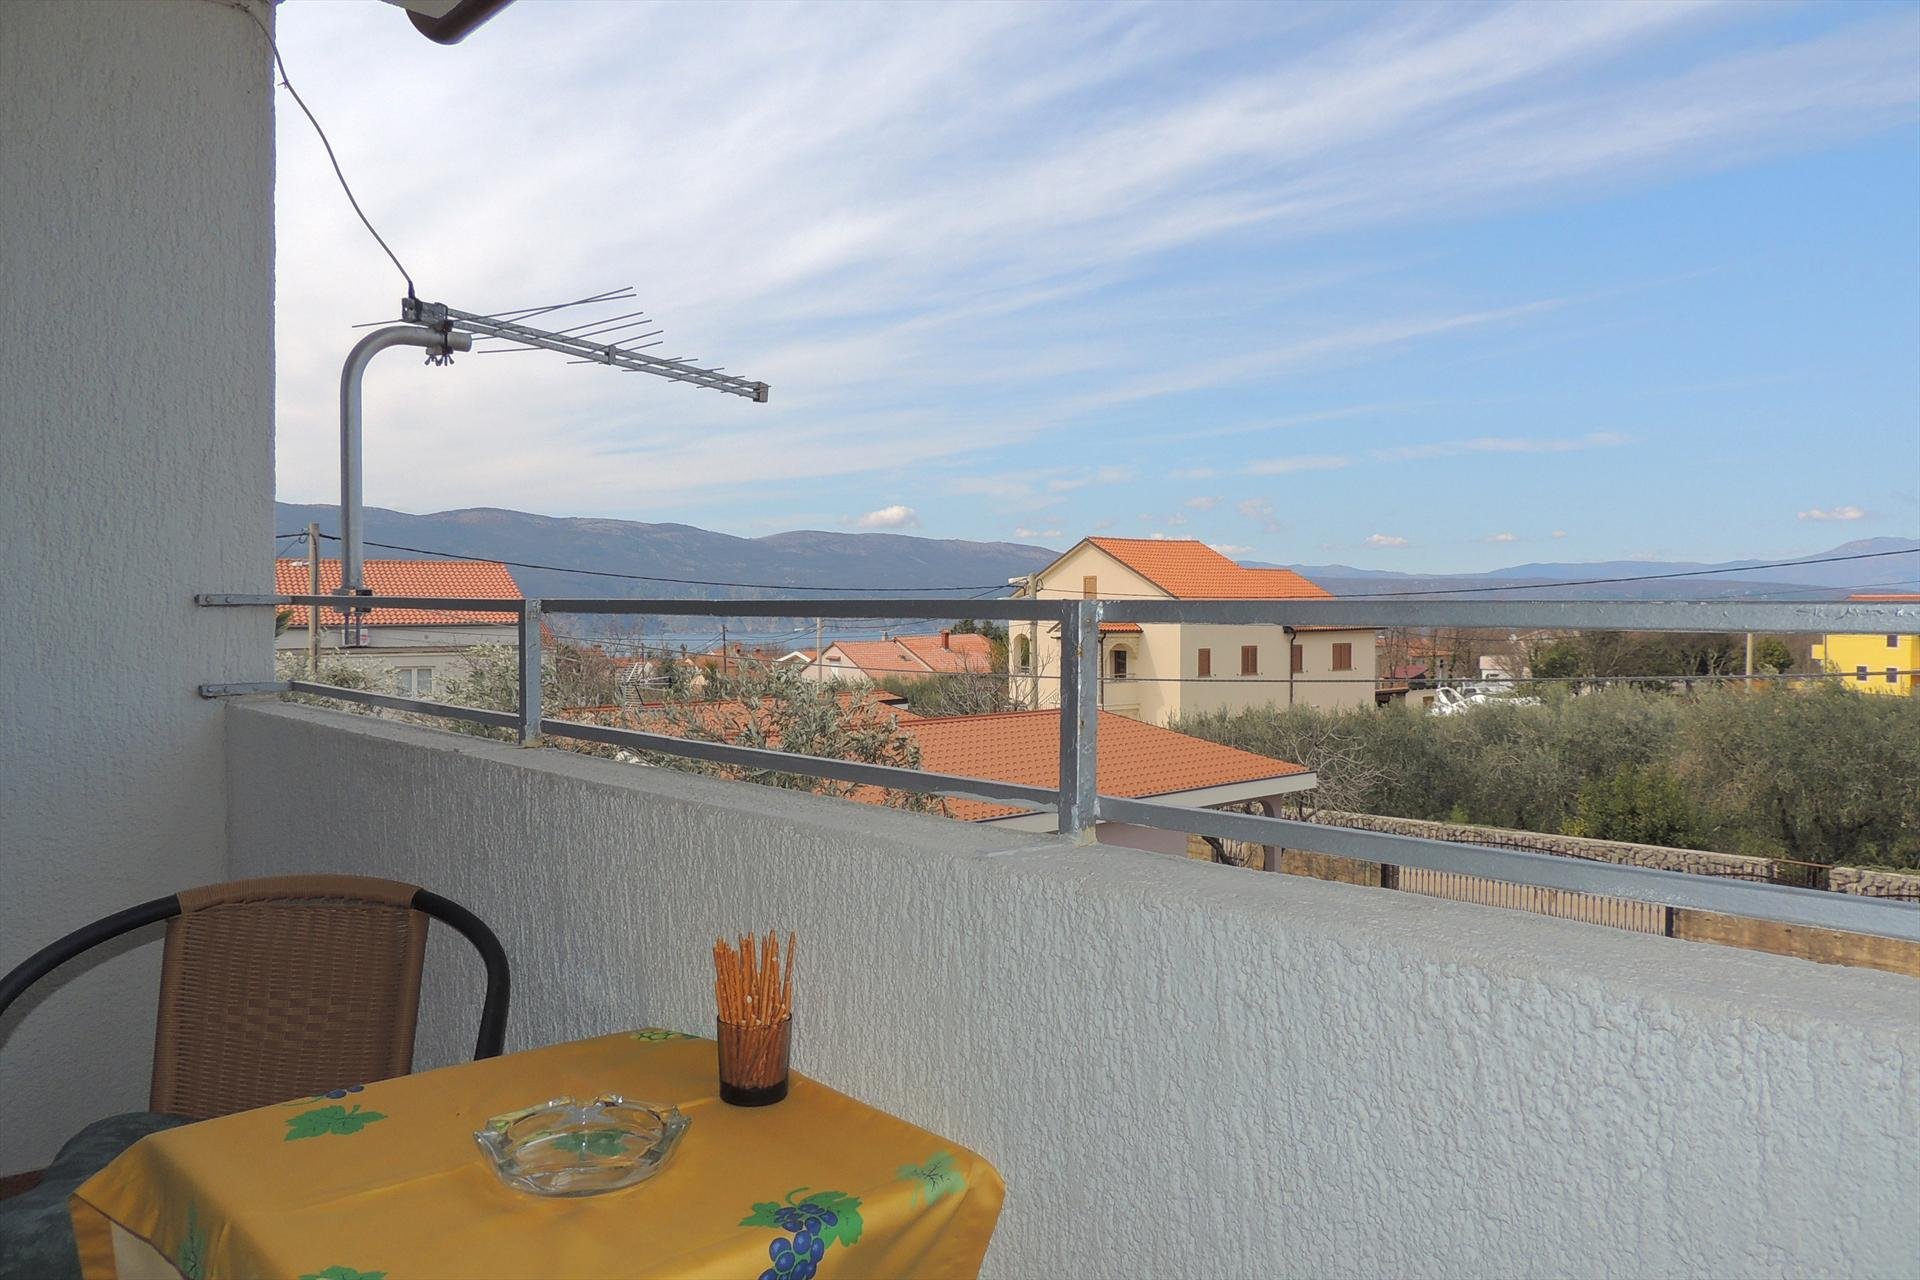 Attractive studio - balcony with sea view, wi-fi, private parking, Studio in Brzac, Island Krk, Kroatië voor 2 personen...